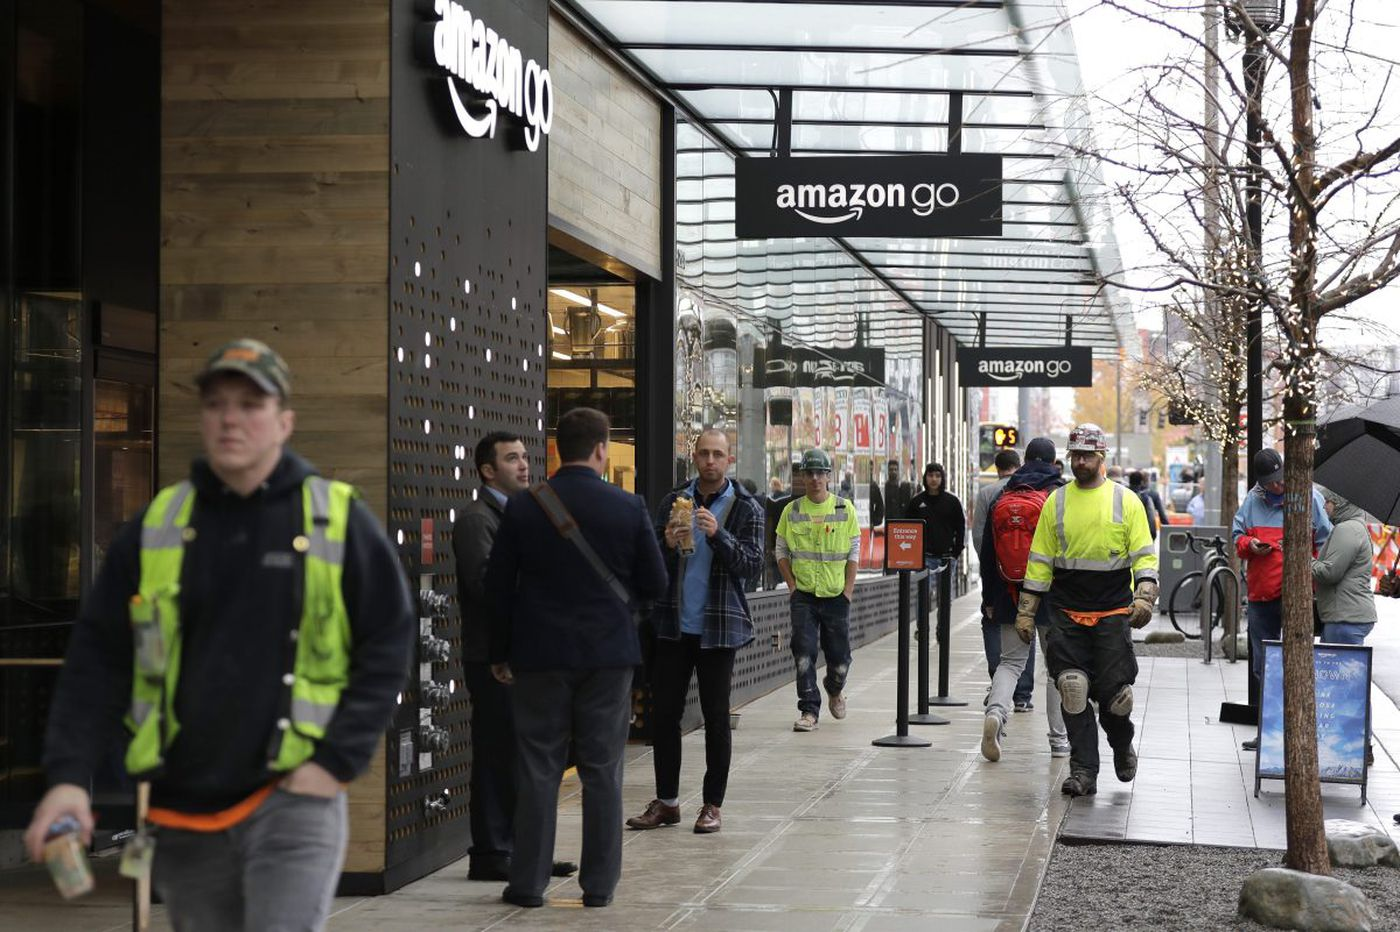 Amazon physical stores likely coming to Philly within two years, PREIT CEO says